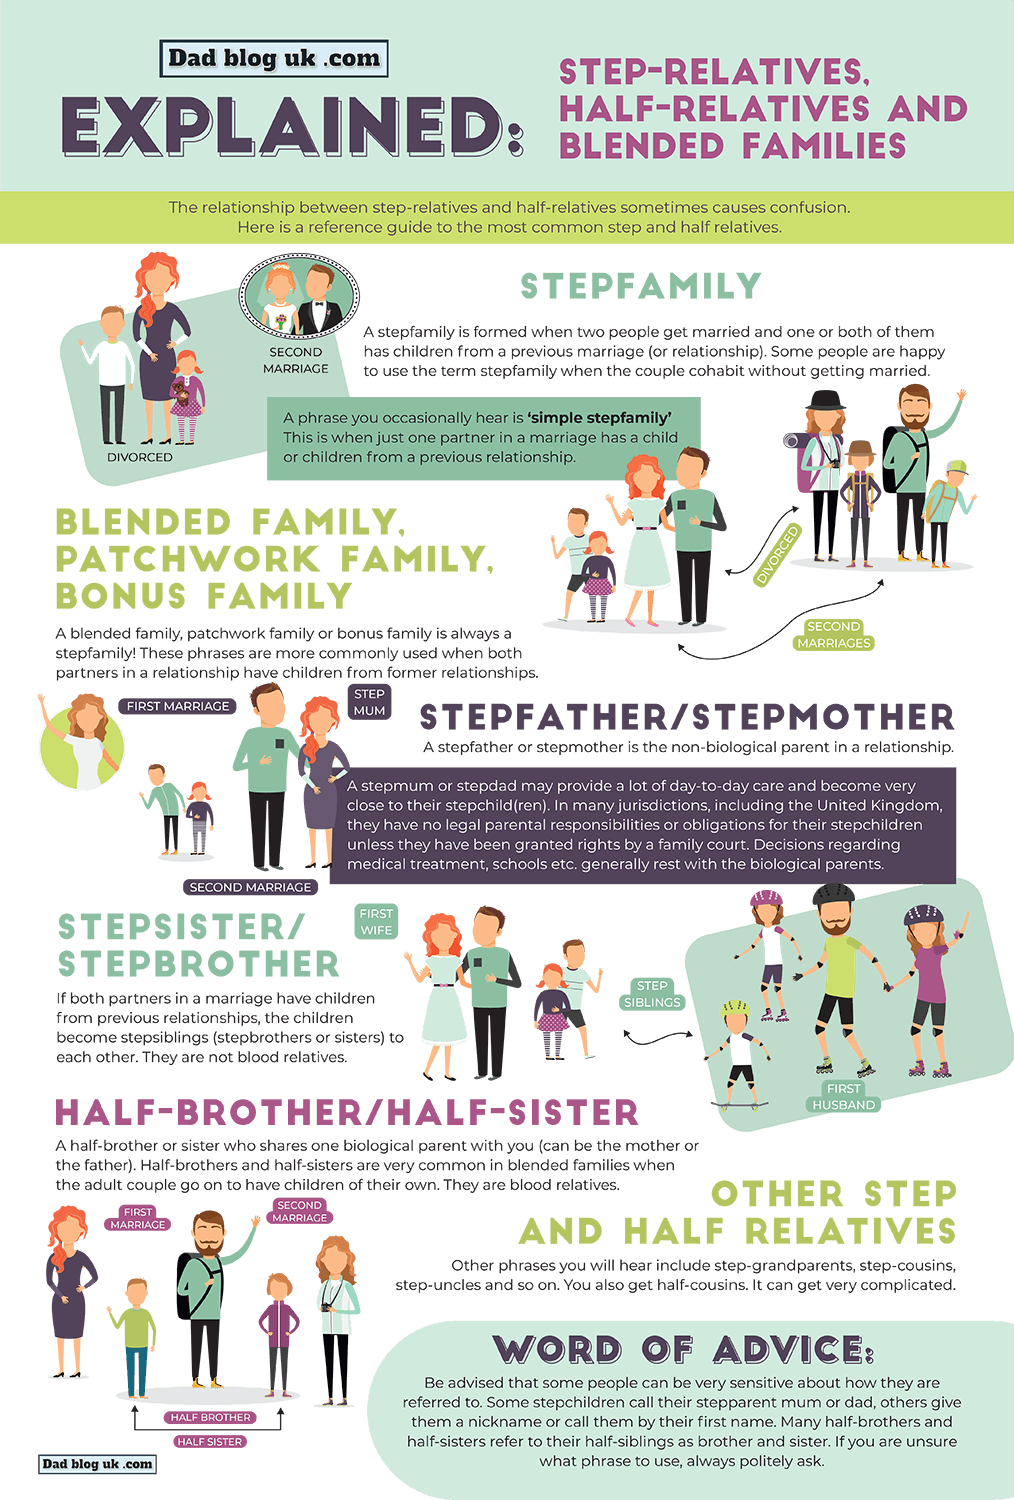 Steprelatives, blended families and half relatives explained in an infographic